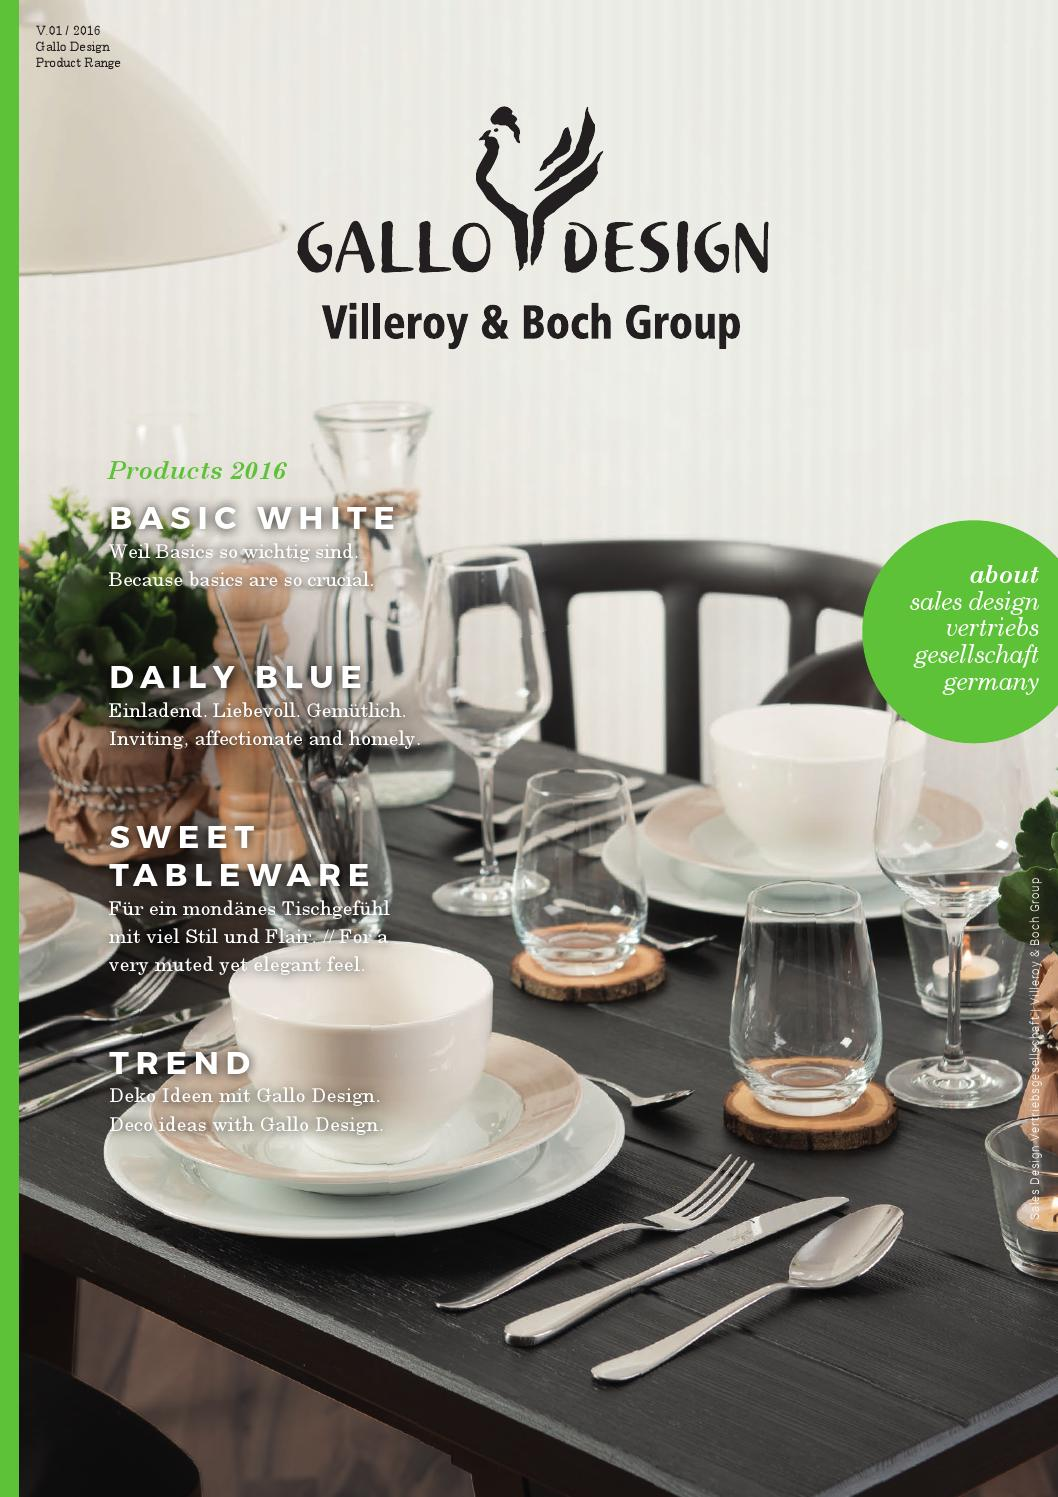 gallo design villeroy boch group by sales design sdv issuu. Black Bedroom Furniture Sets. Home Design Ideas